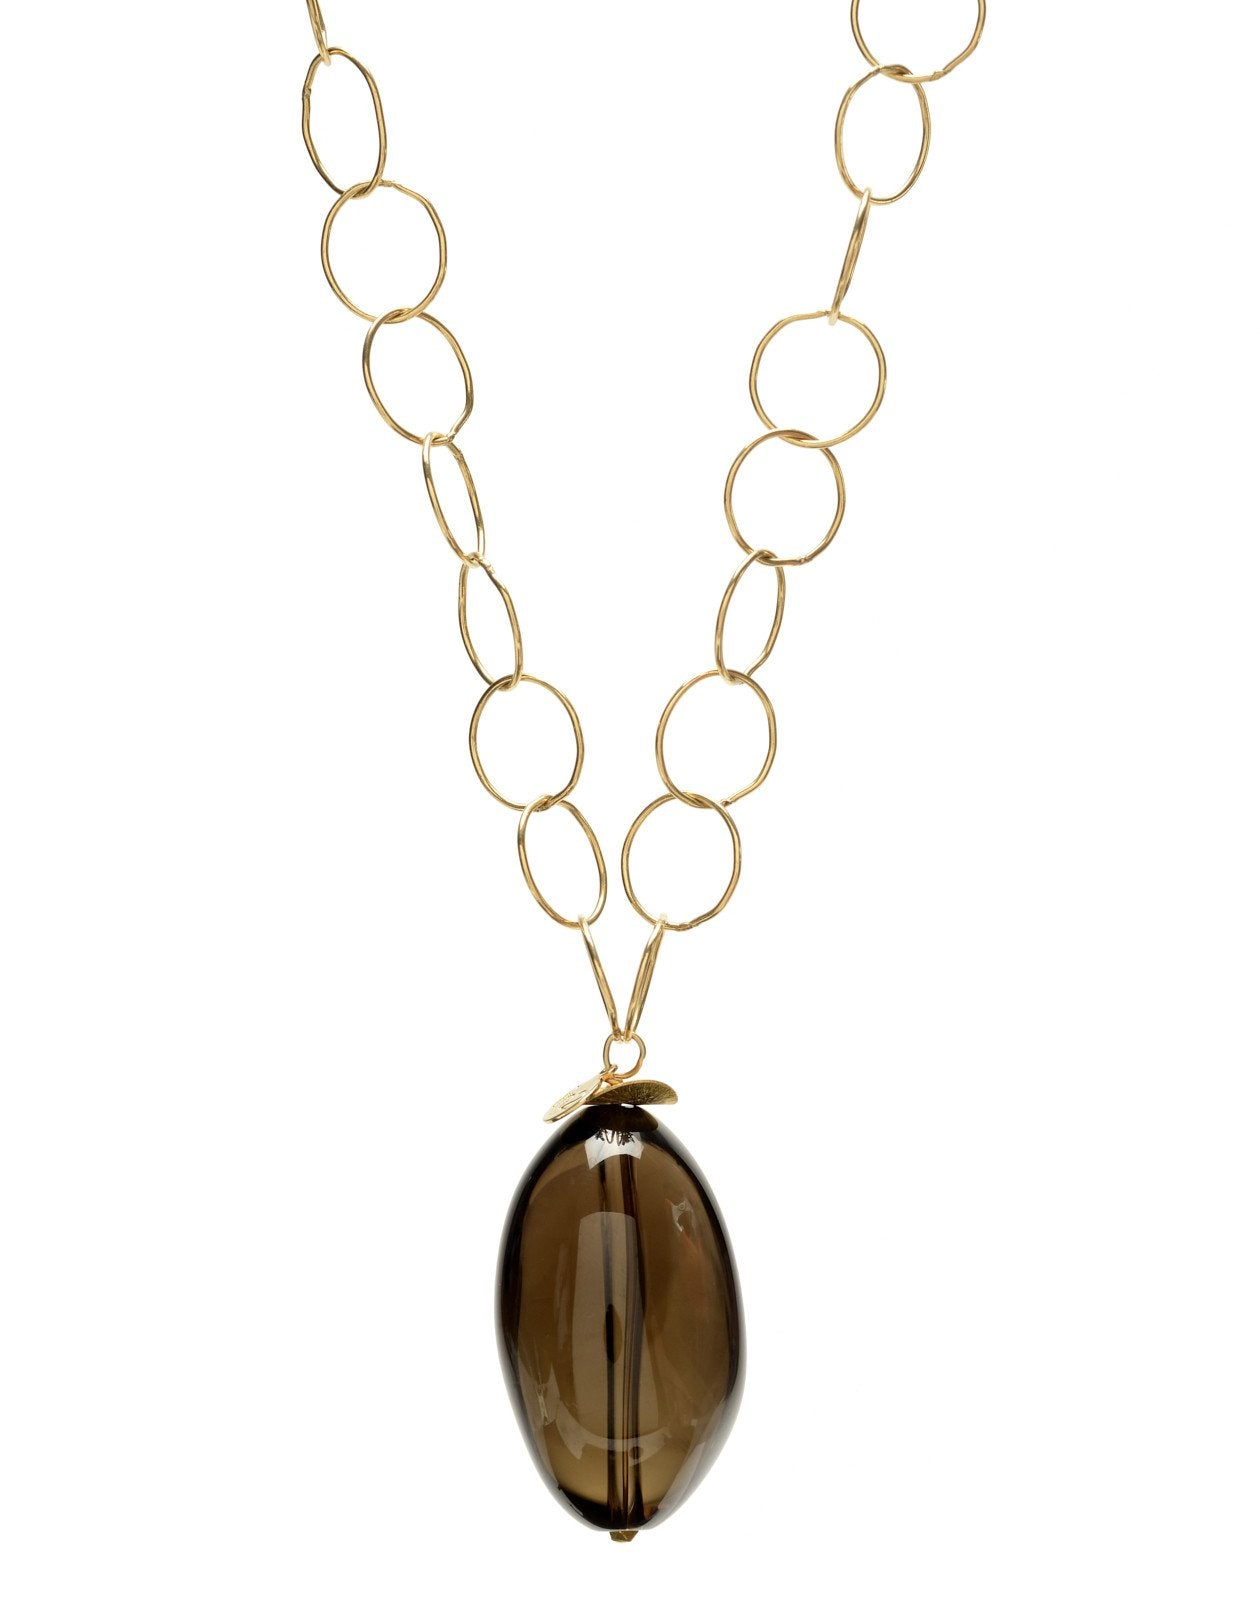 IN2 NINA SMOKEY QUARTZ NECKLACE